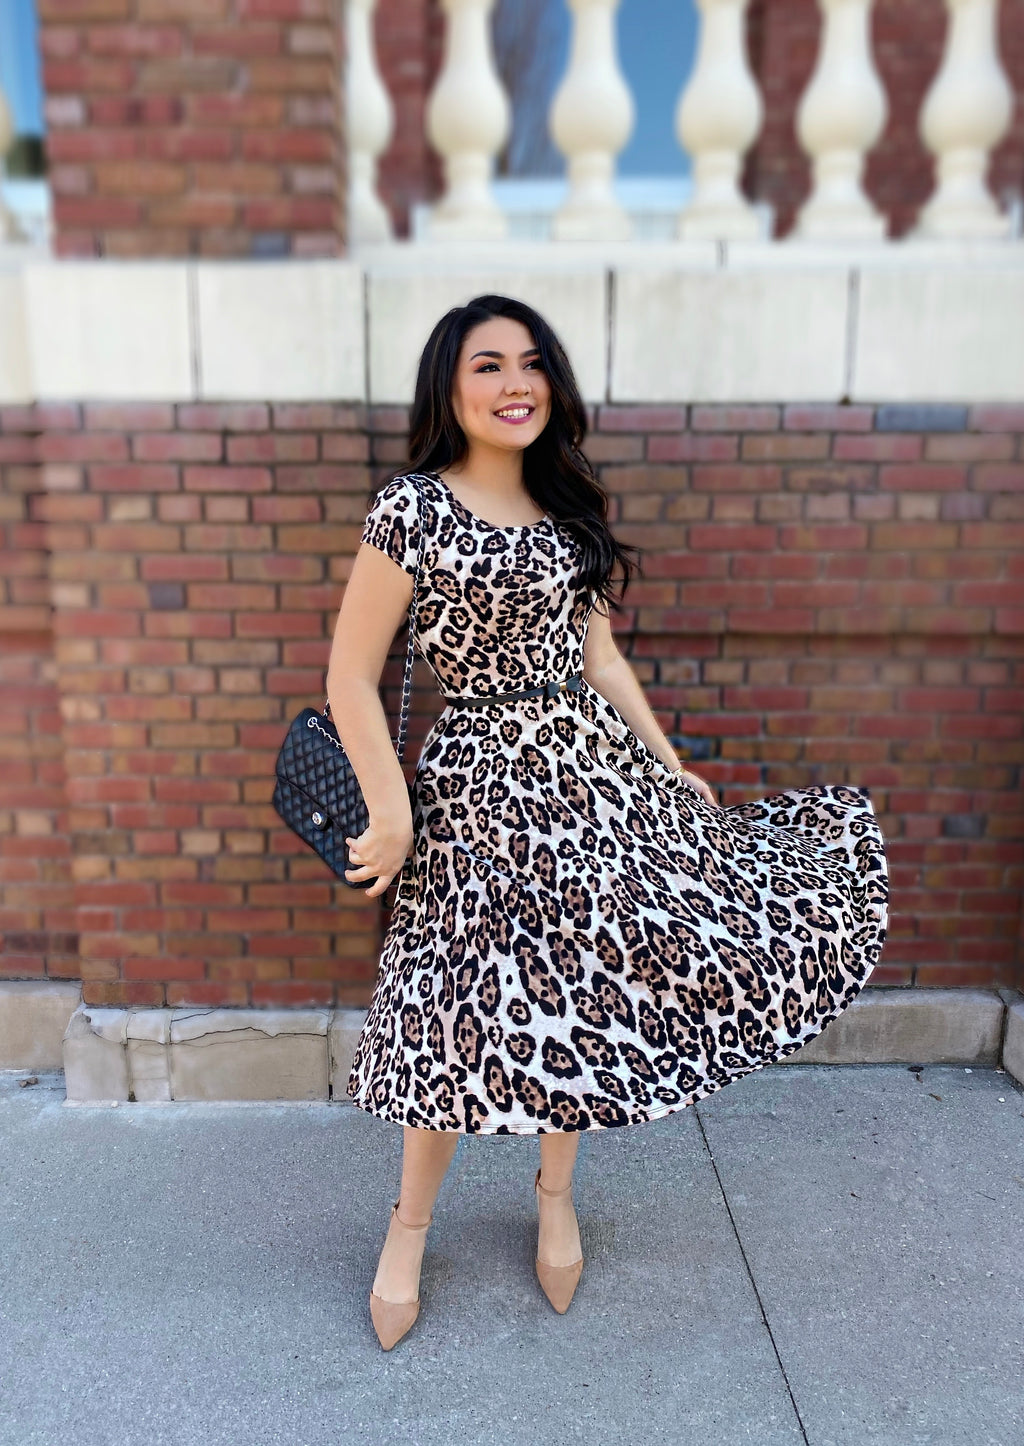 The Ari Leopard Swing Dress - The Darling Style - Modest Dresses